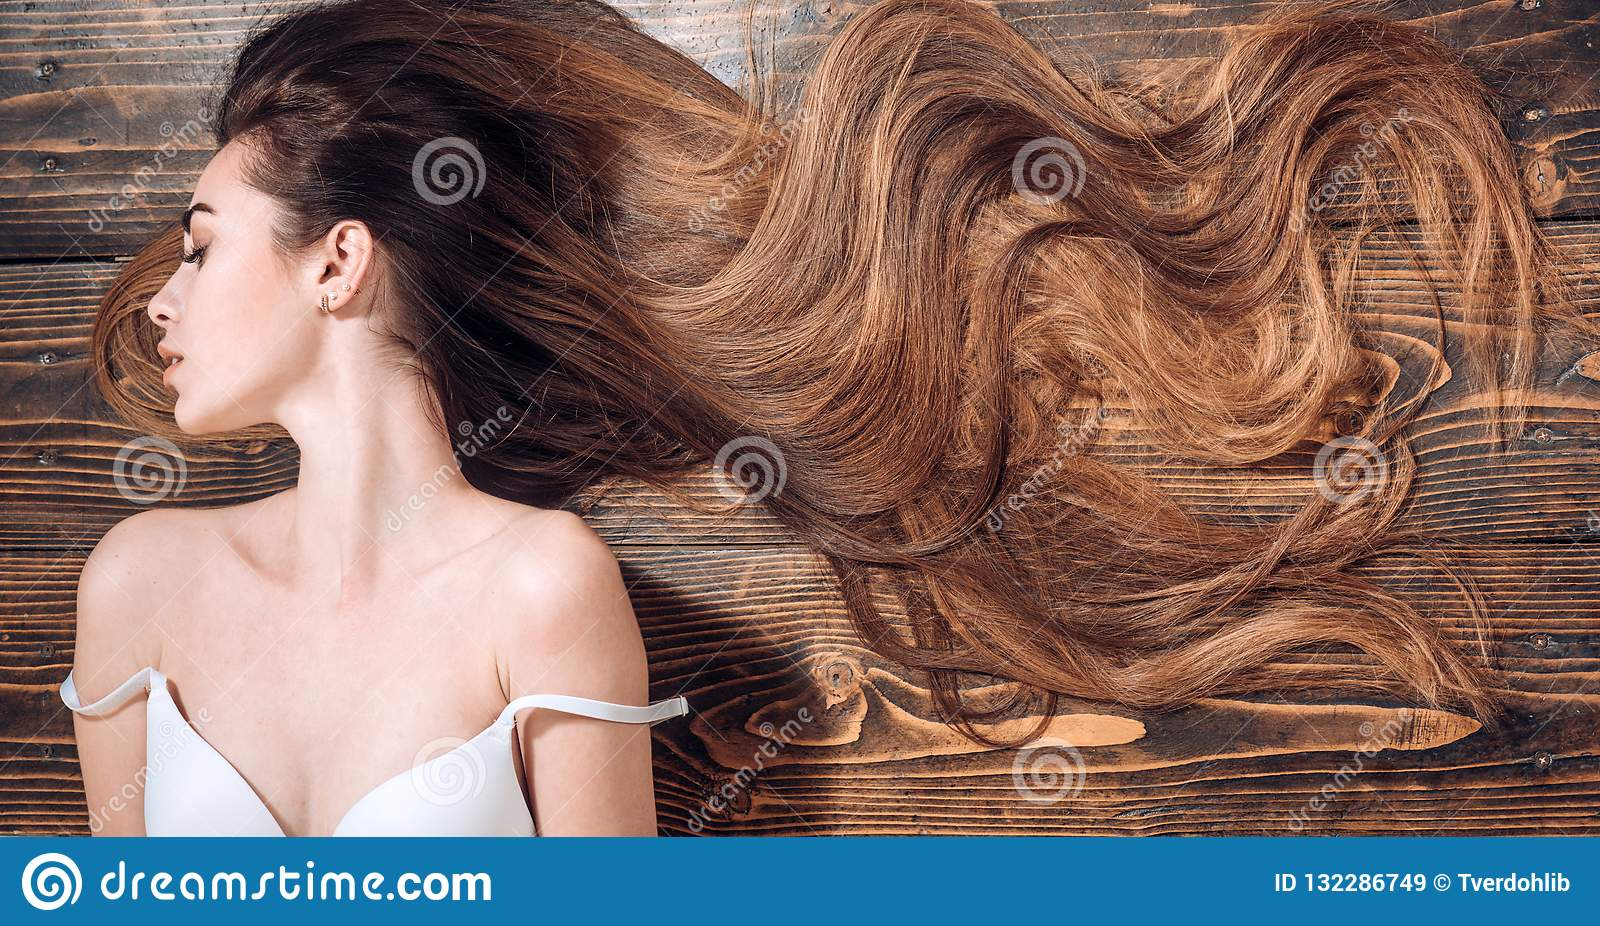 Beauty hair Salon. Woman with long beautiful hair. Fashion haircut. Beauty girl with long and shiny wavy hair. Trendy